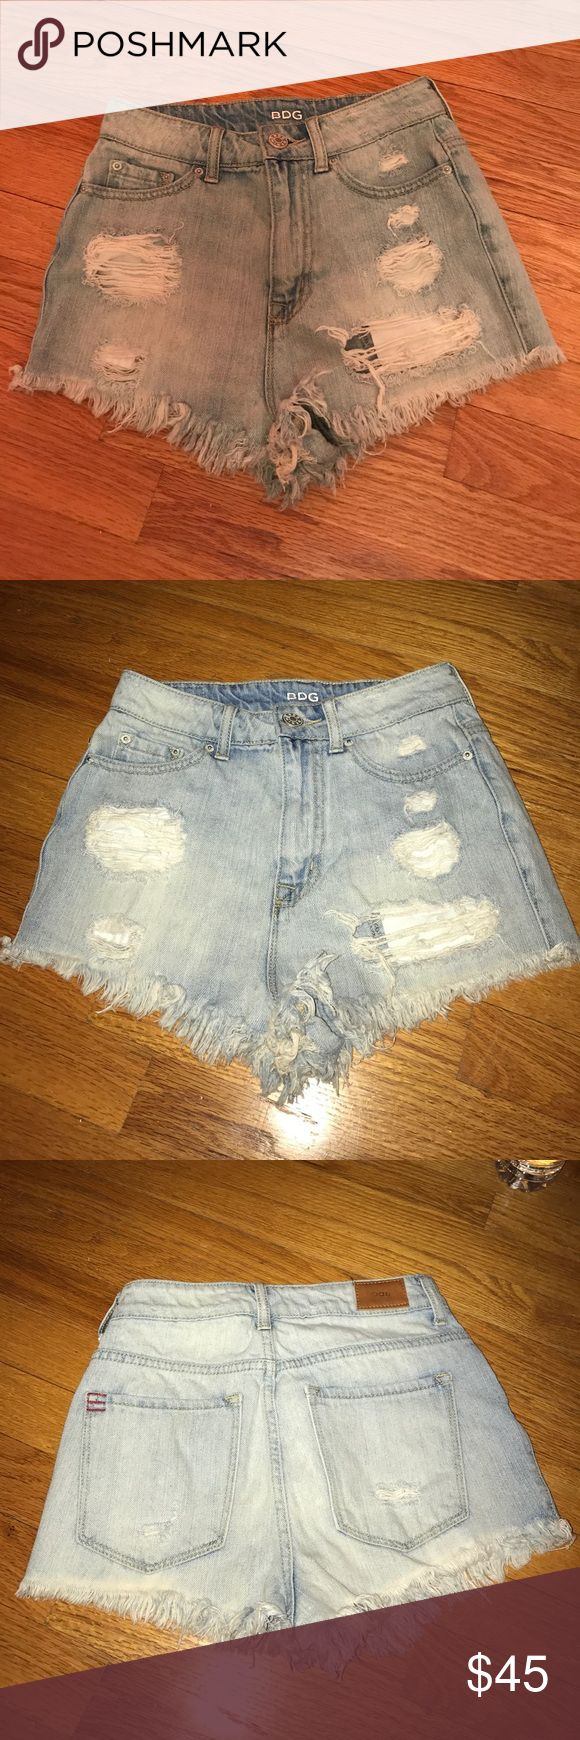 BDG High waisted Jean shorts Light-medium wash high waisted Jean shorts. Distressed fringe on bottom and rips on front. Pockets in front and back BDG Shorts Jean Shorts